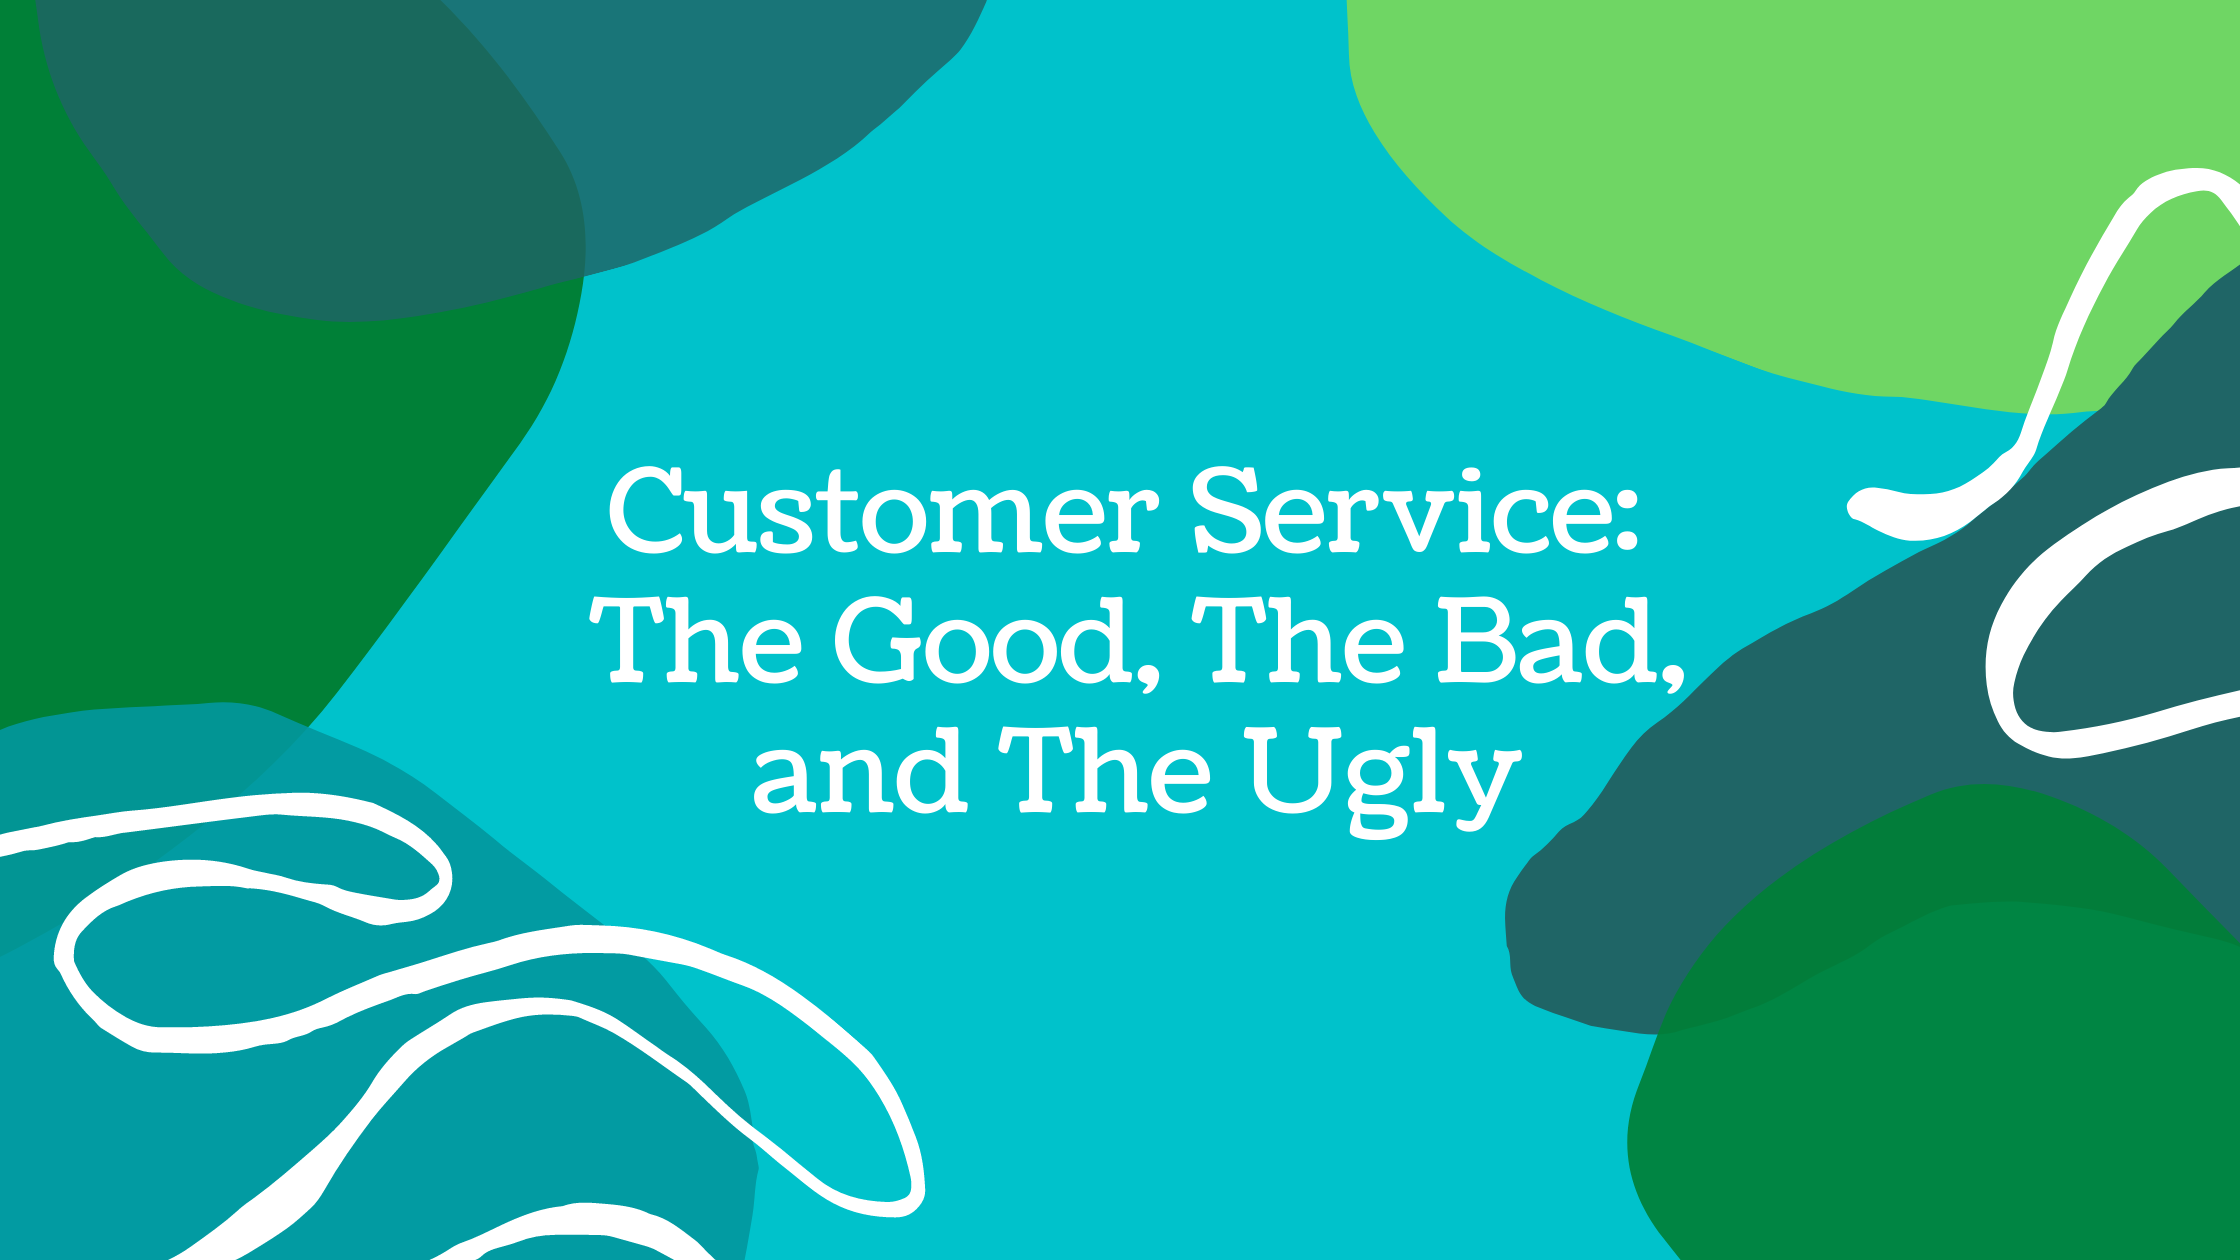 Customer Service: The Good, The Bad, and The Ugly.